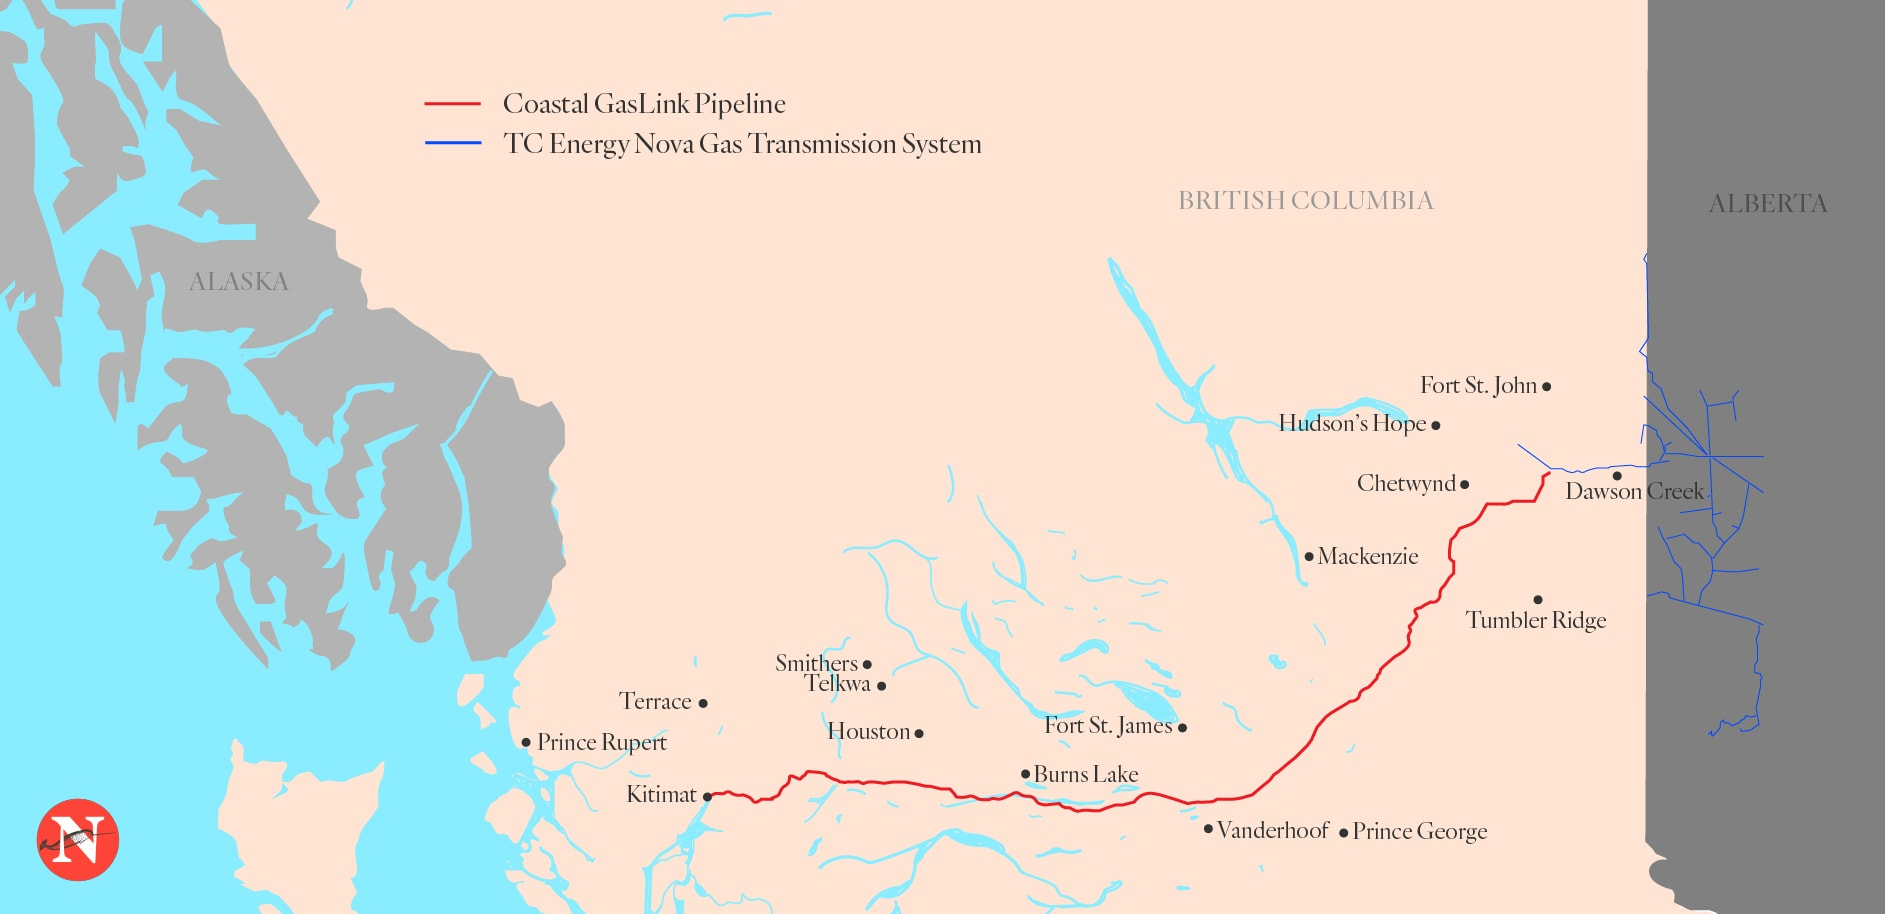 Coastal GasLink Pipeline Map